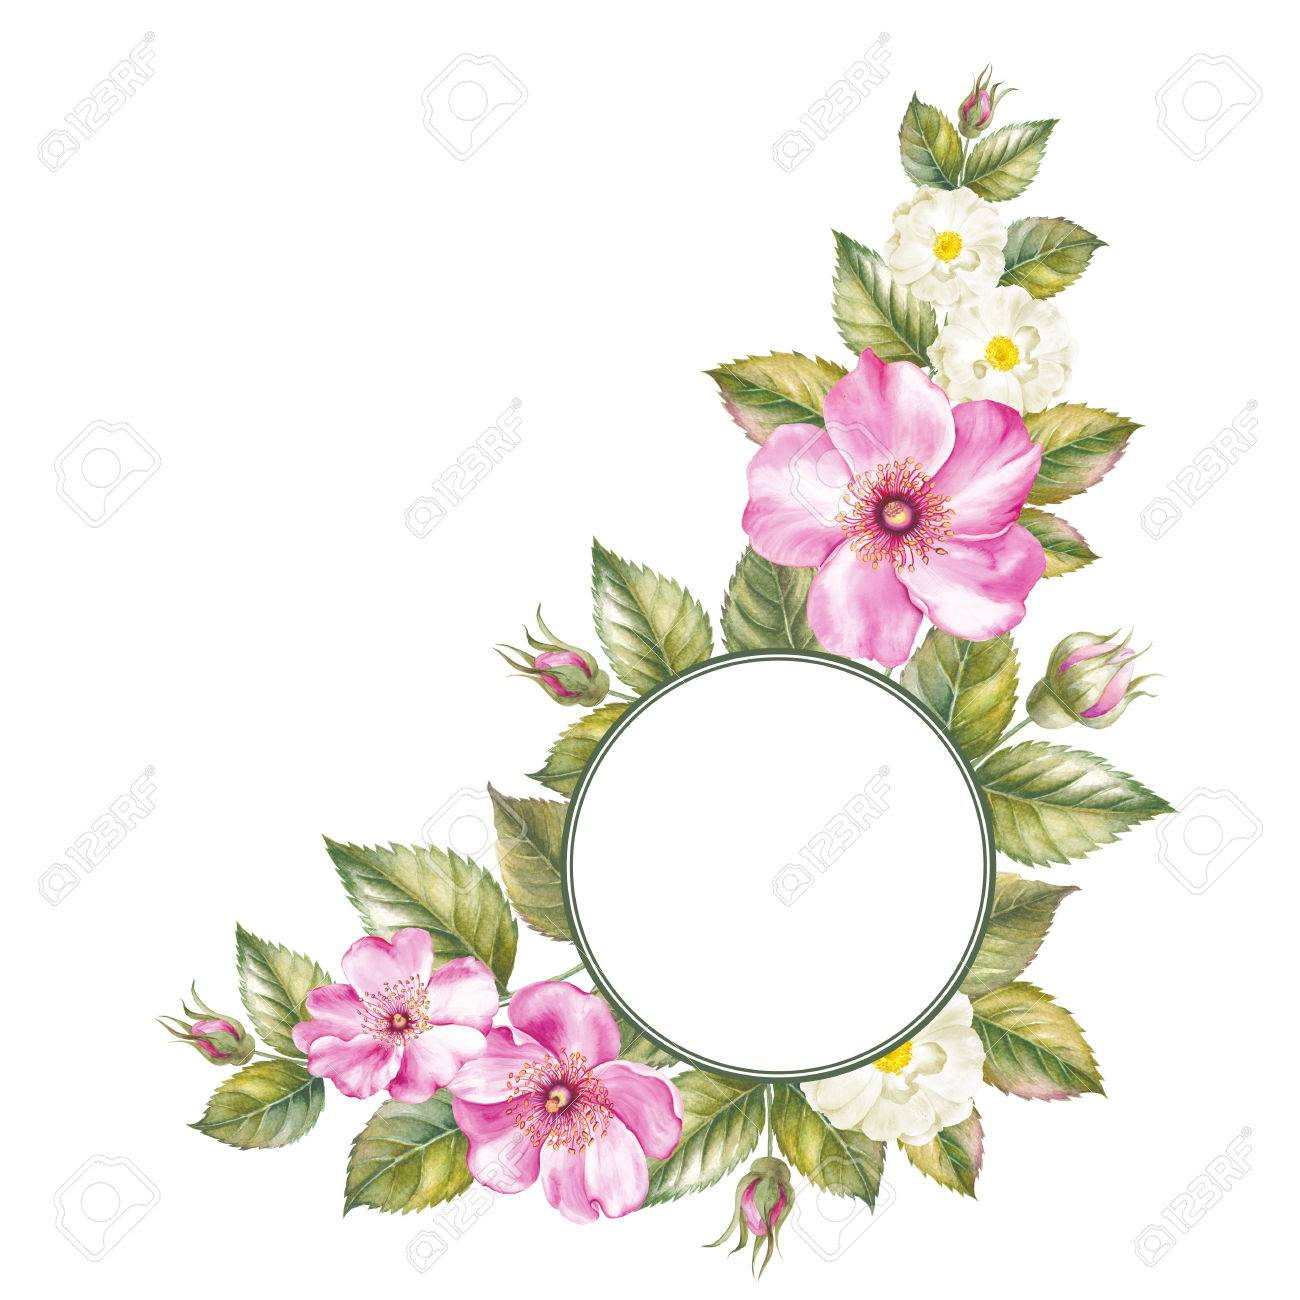 Elegant Card With Circle Frame For Your Text And Summer Blooming ...